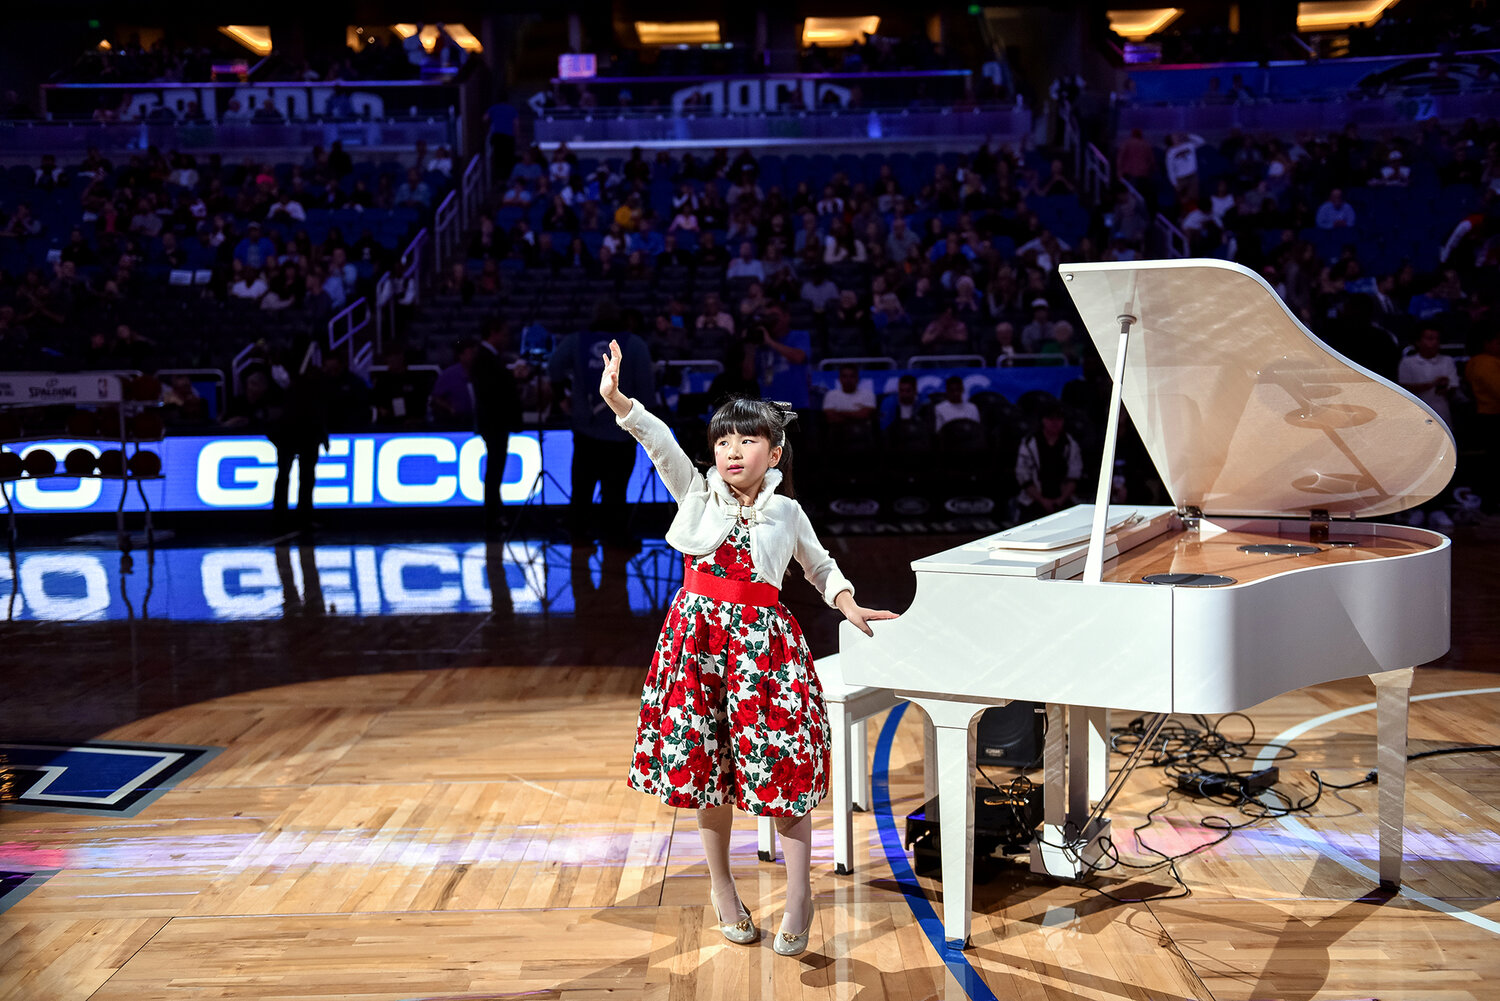 Abby Huang takes a bow at the NBA's Orlando Magic halftime show.